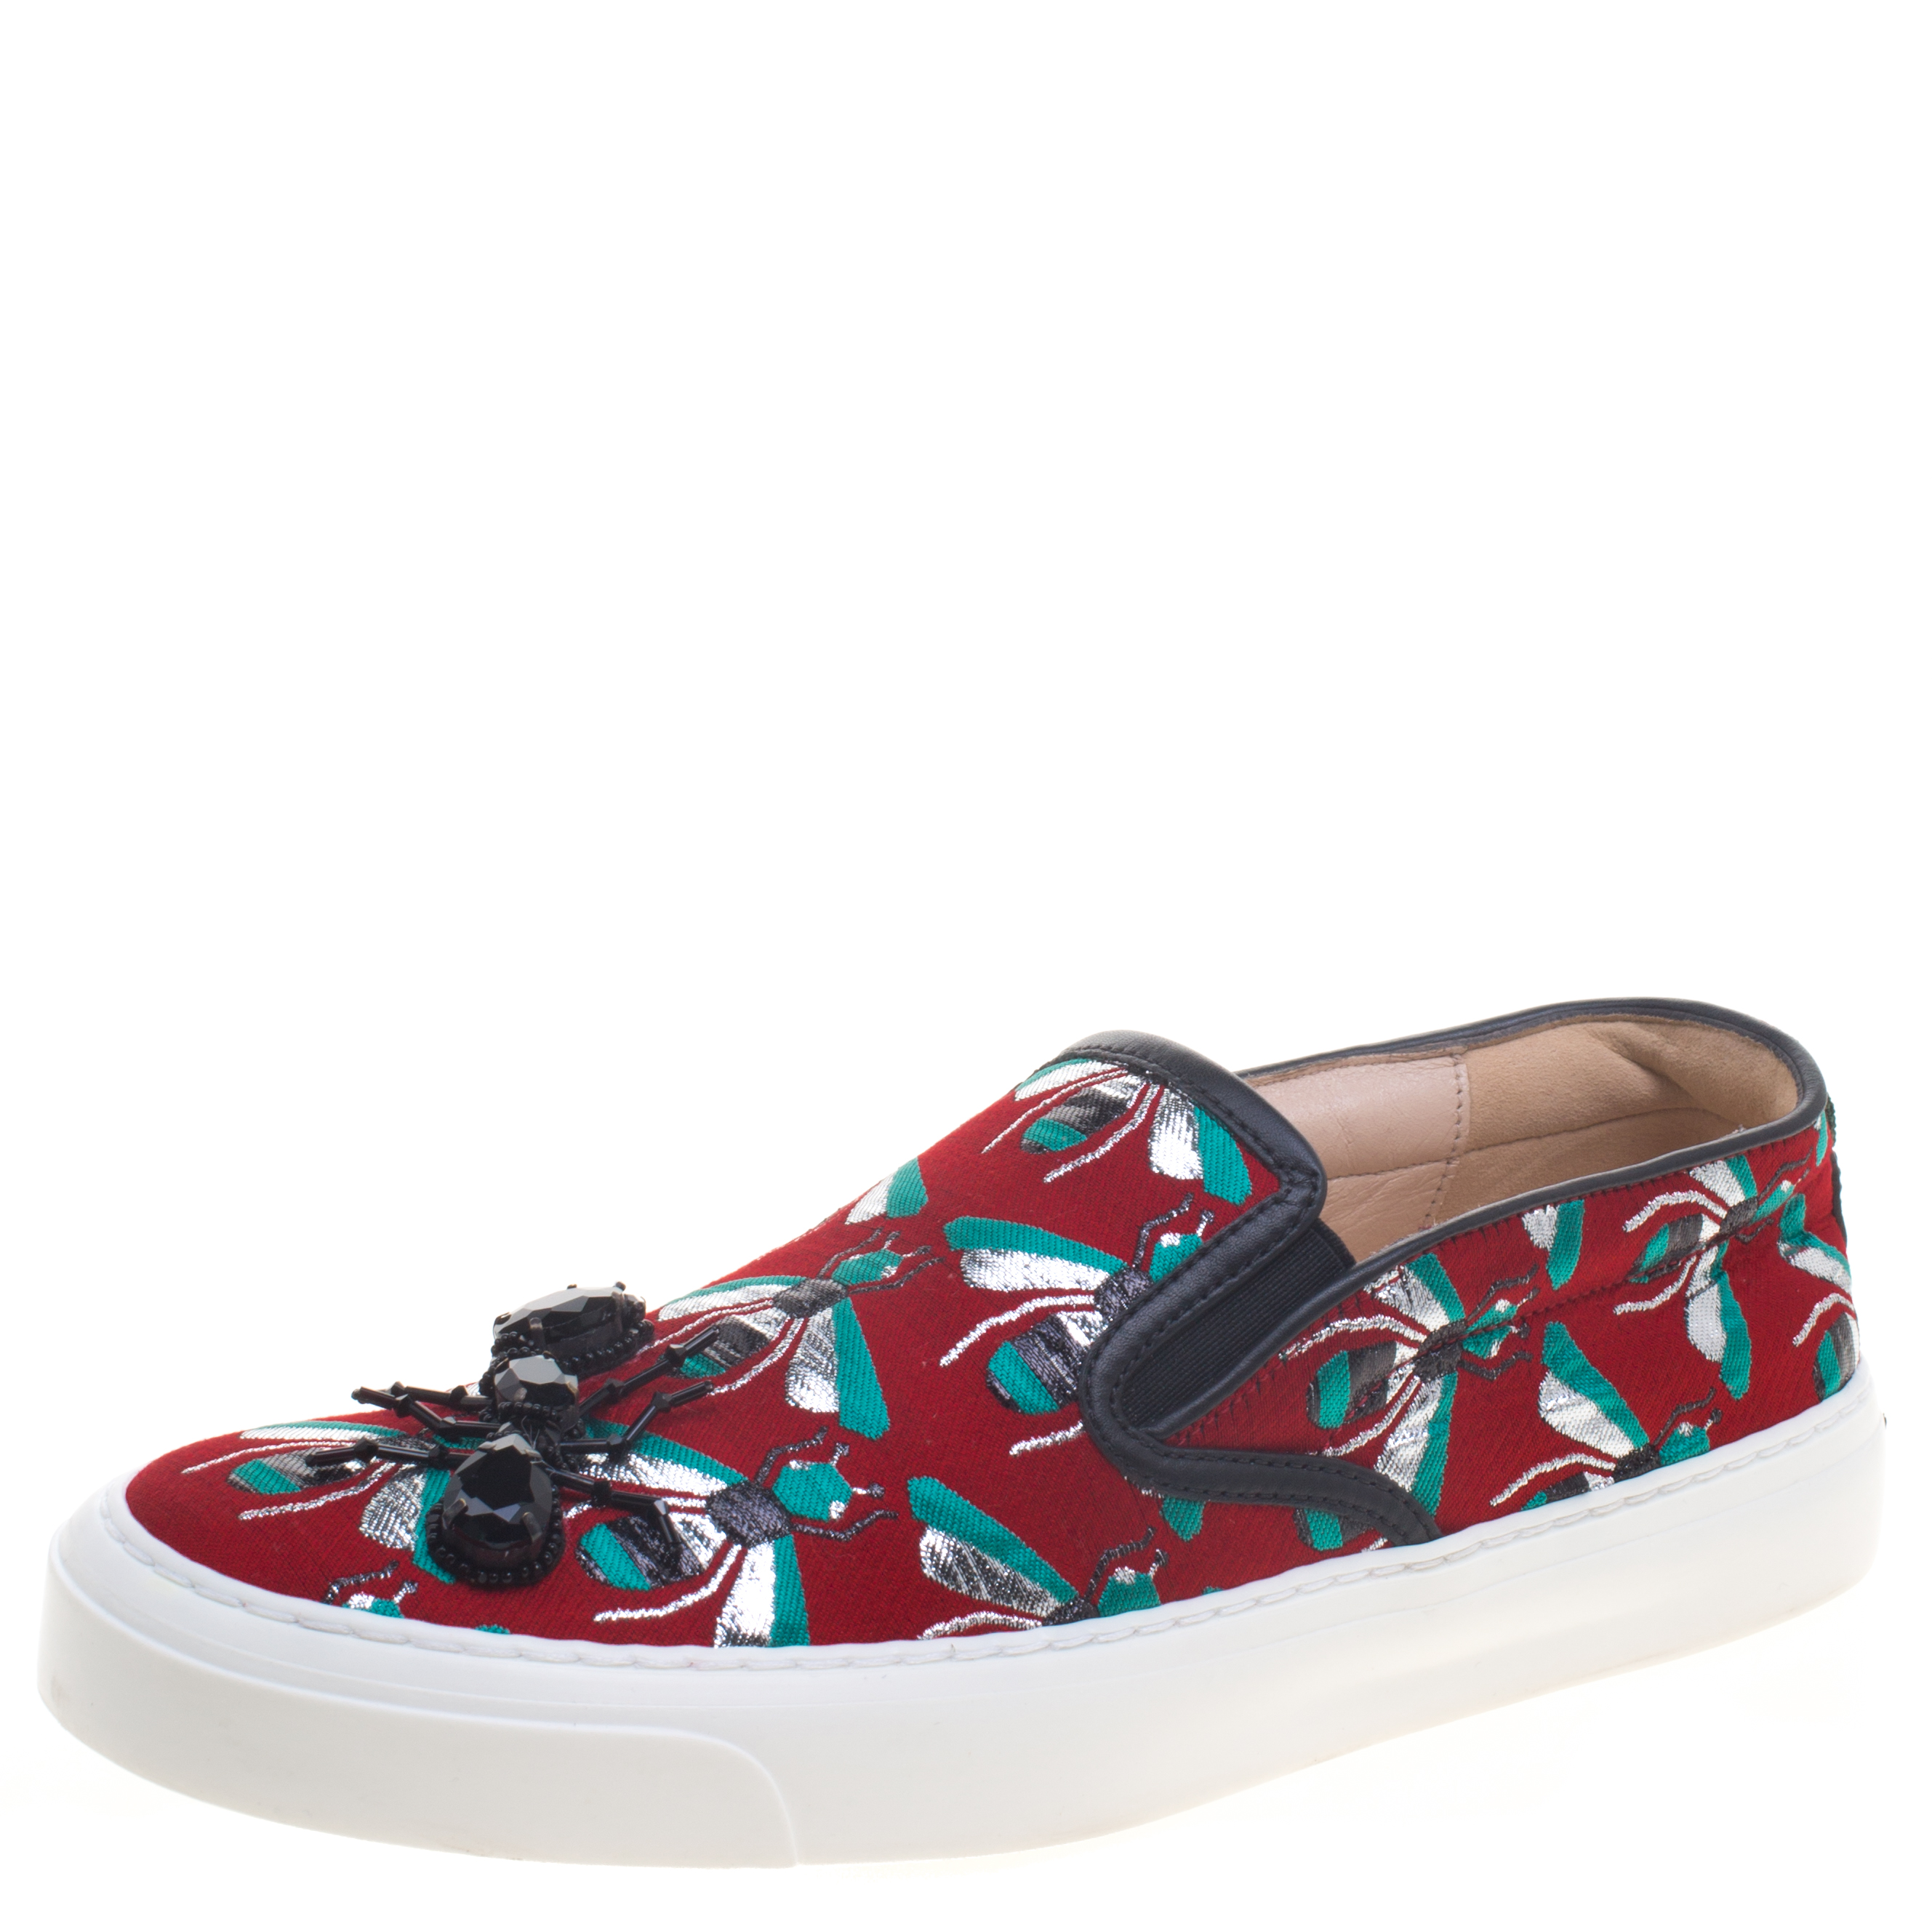 15b3d784a75 ... Gucci Red Bee Jacquard Fabric Ant Embellished Slip On Sneakers Size  38.5. nextprev. prevnext